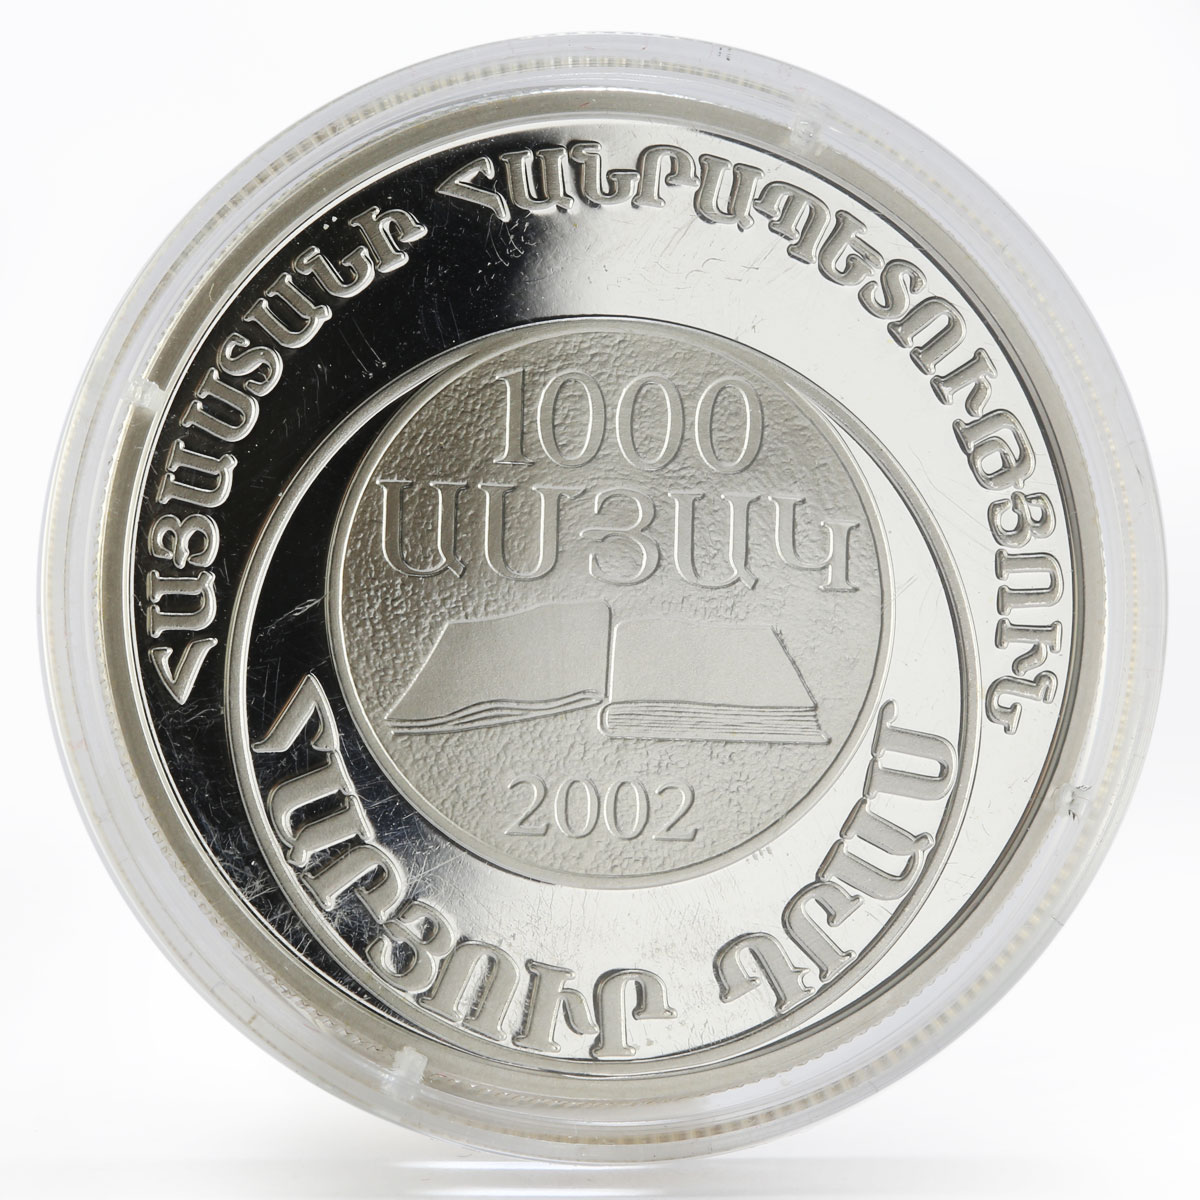 Armenia 100 drams Book of Sadness 1000th Anniverasry proof silver coin 2002